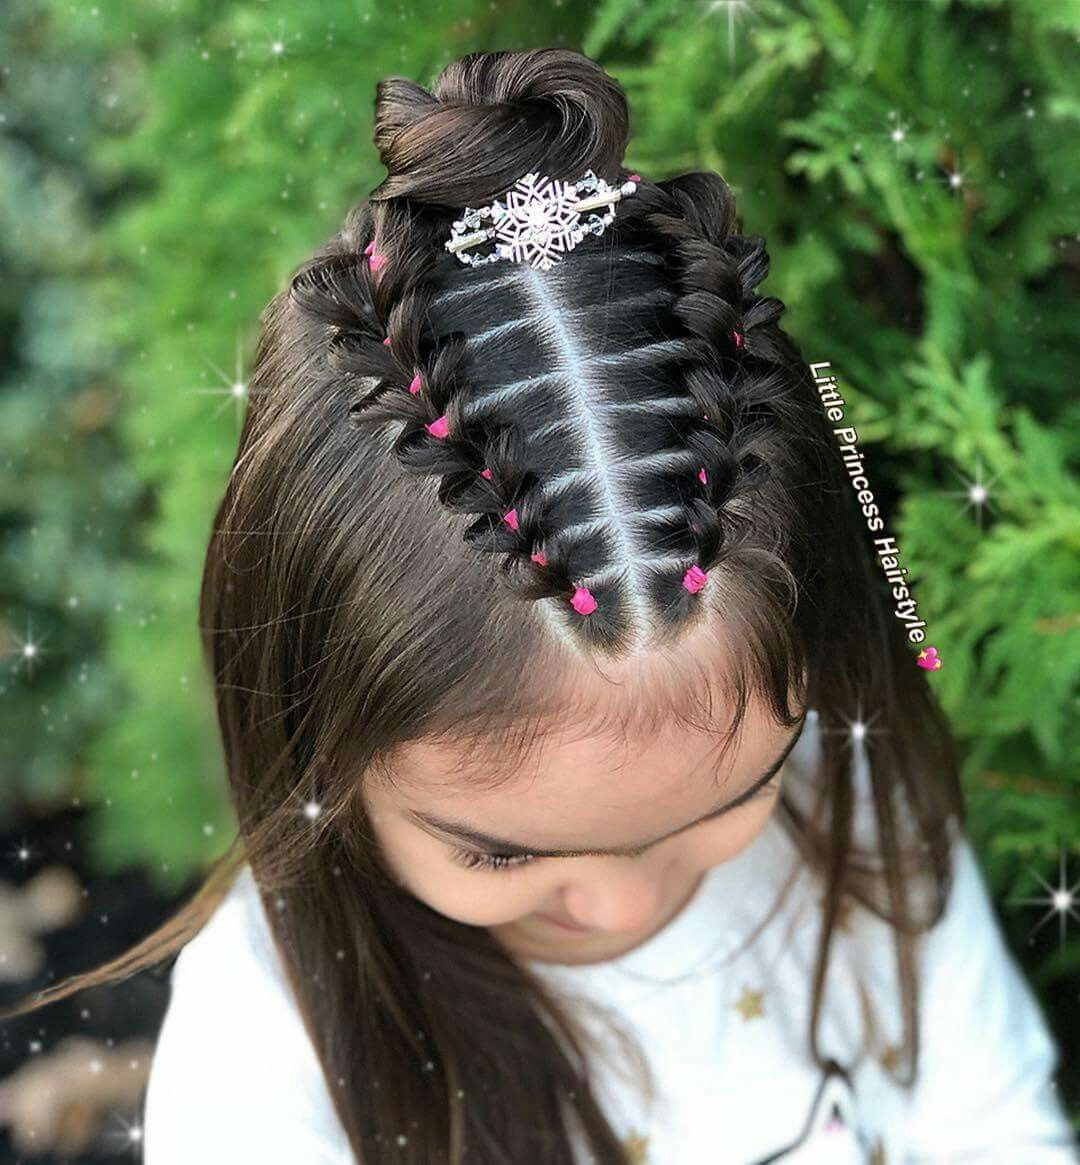 Her Hispanic Godmother Will Have To Do This Kids Hairstyles Hair Styles Toddler Hairstyles Girl